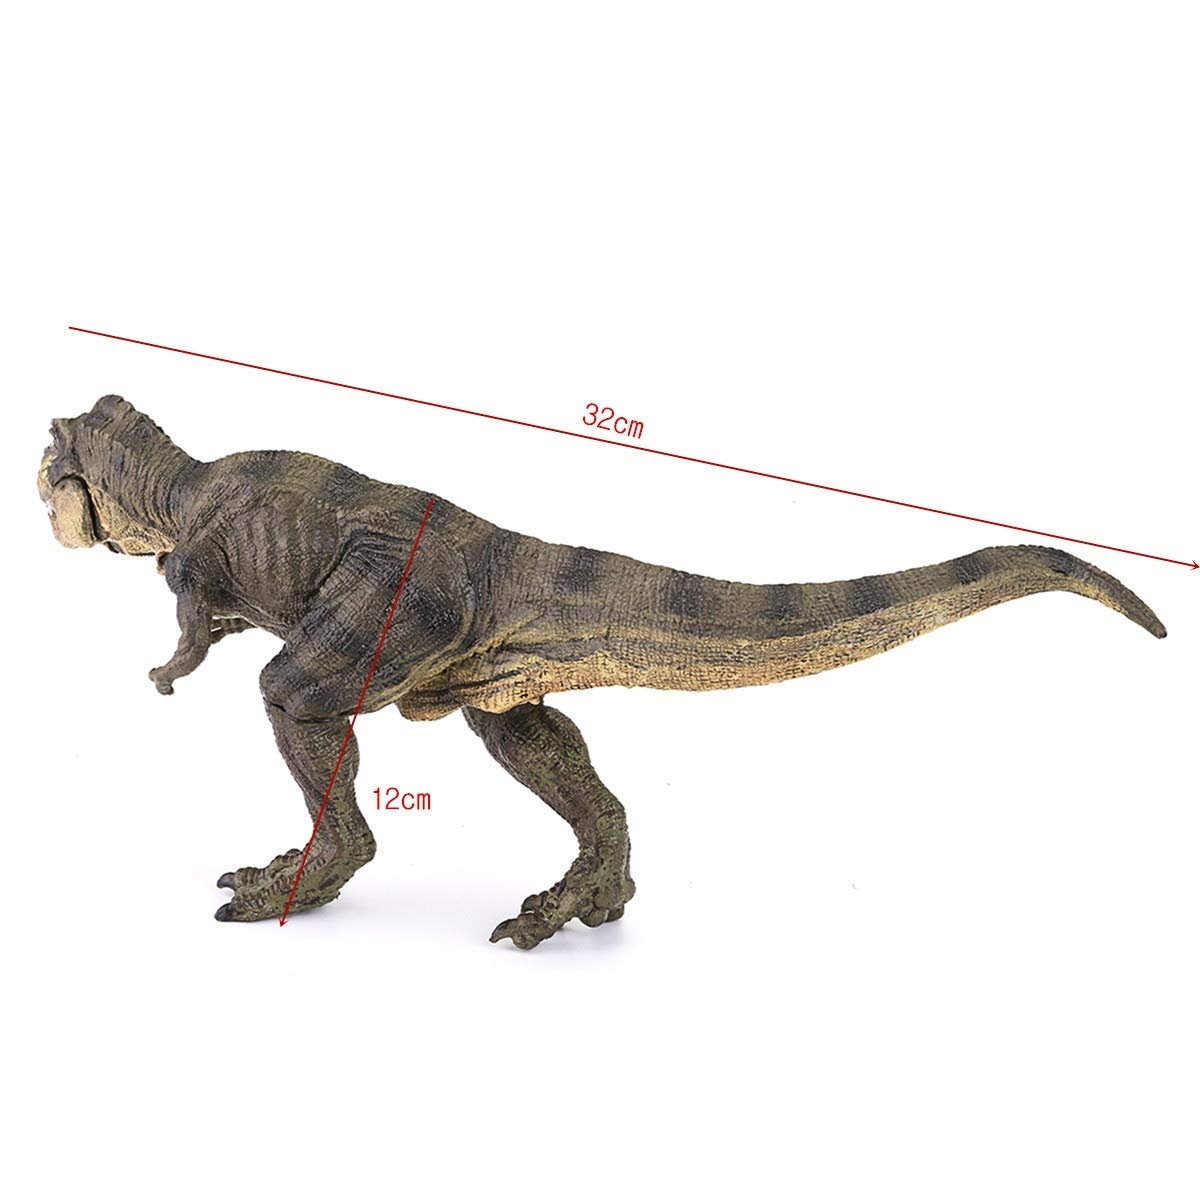 Tyrannosaurus Rex Dinosaur Plastic Toy Model Birthday Kids Gift Children Toy